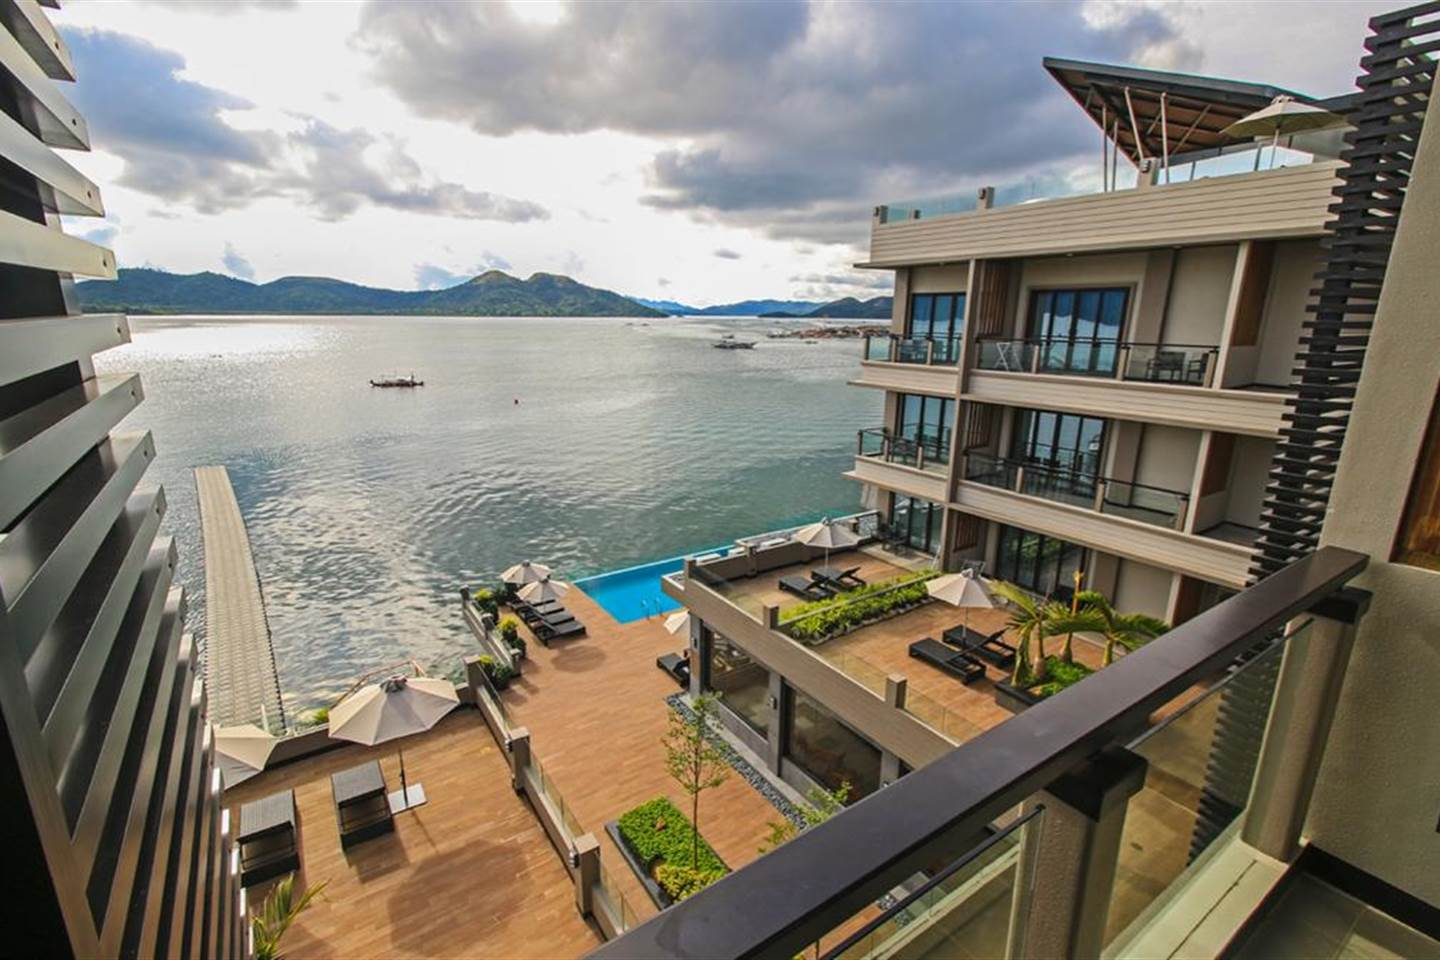 Capable Superior  with Deck Access (Coron Bayside Hotel)